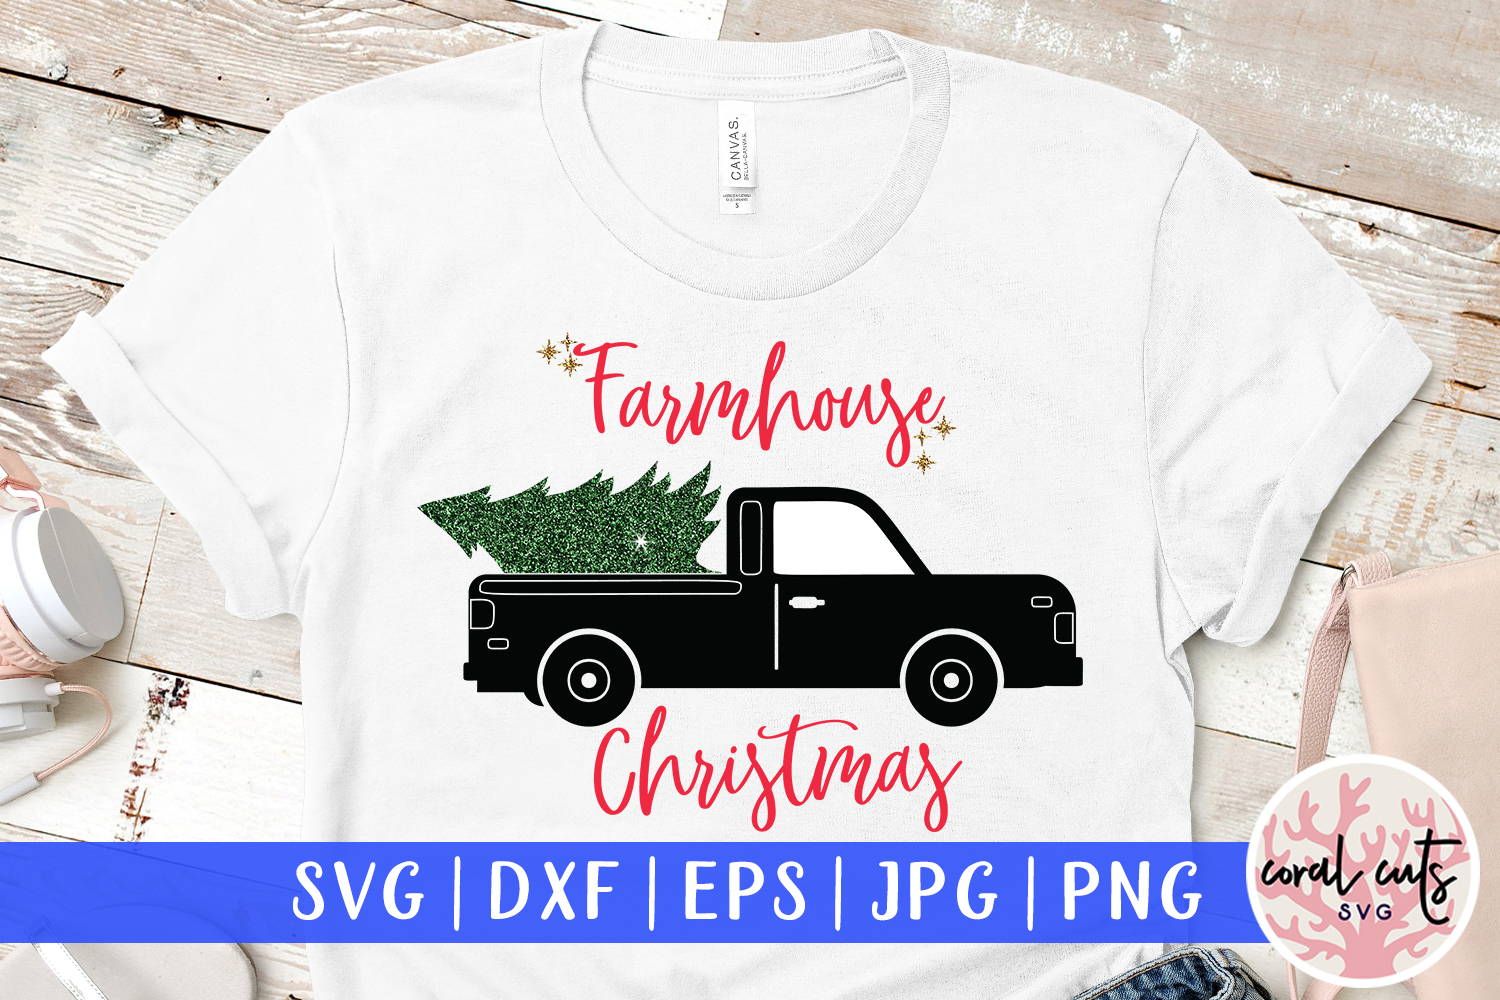 Download Free Farmhouse Christmas Graphic By Coralcutssvg Creative Fabrica for Cricut Explore, Silhouette and other cutting machines.